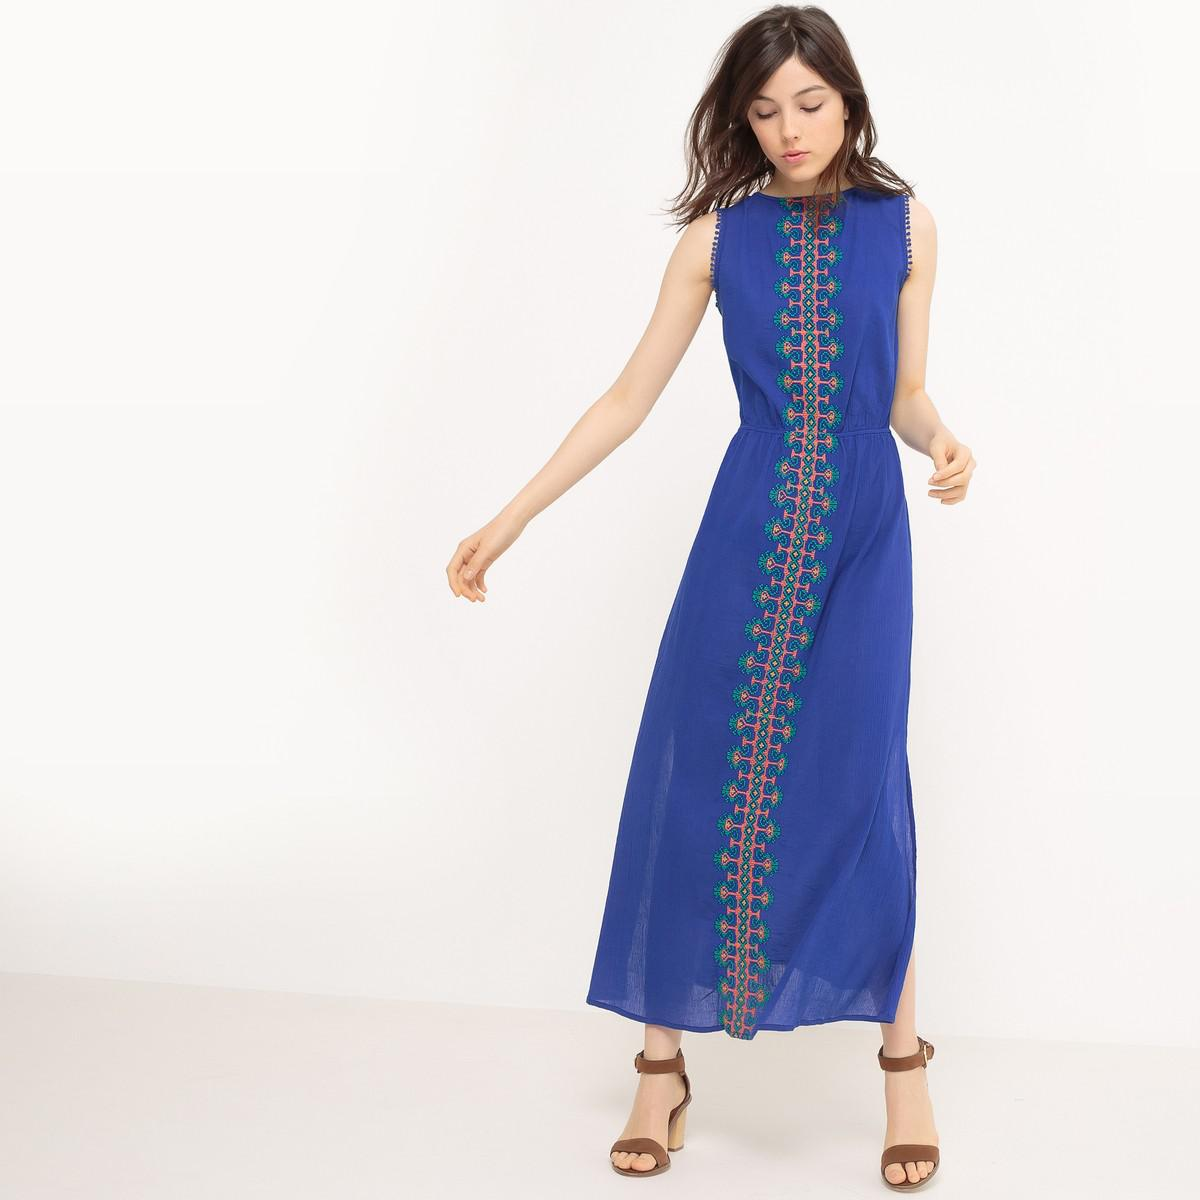 Lyst - La Redoute Fancy Maxi Dress in Blue ddb448c7d